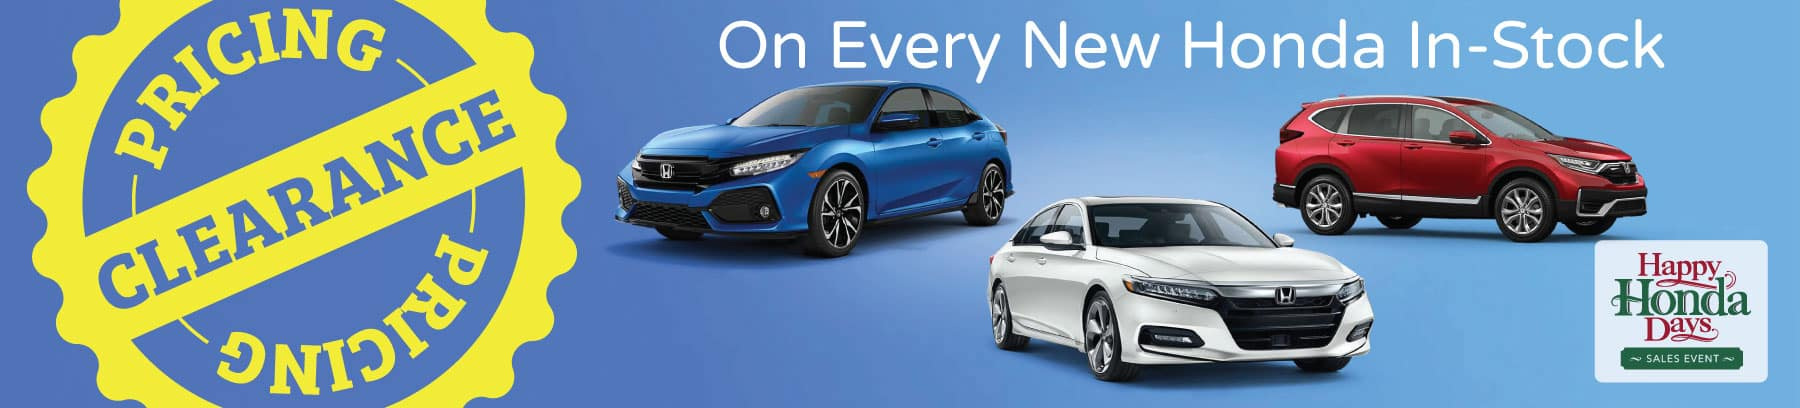 Clearance Pricing on every new Honda in stock